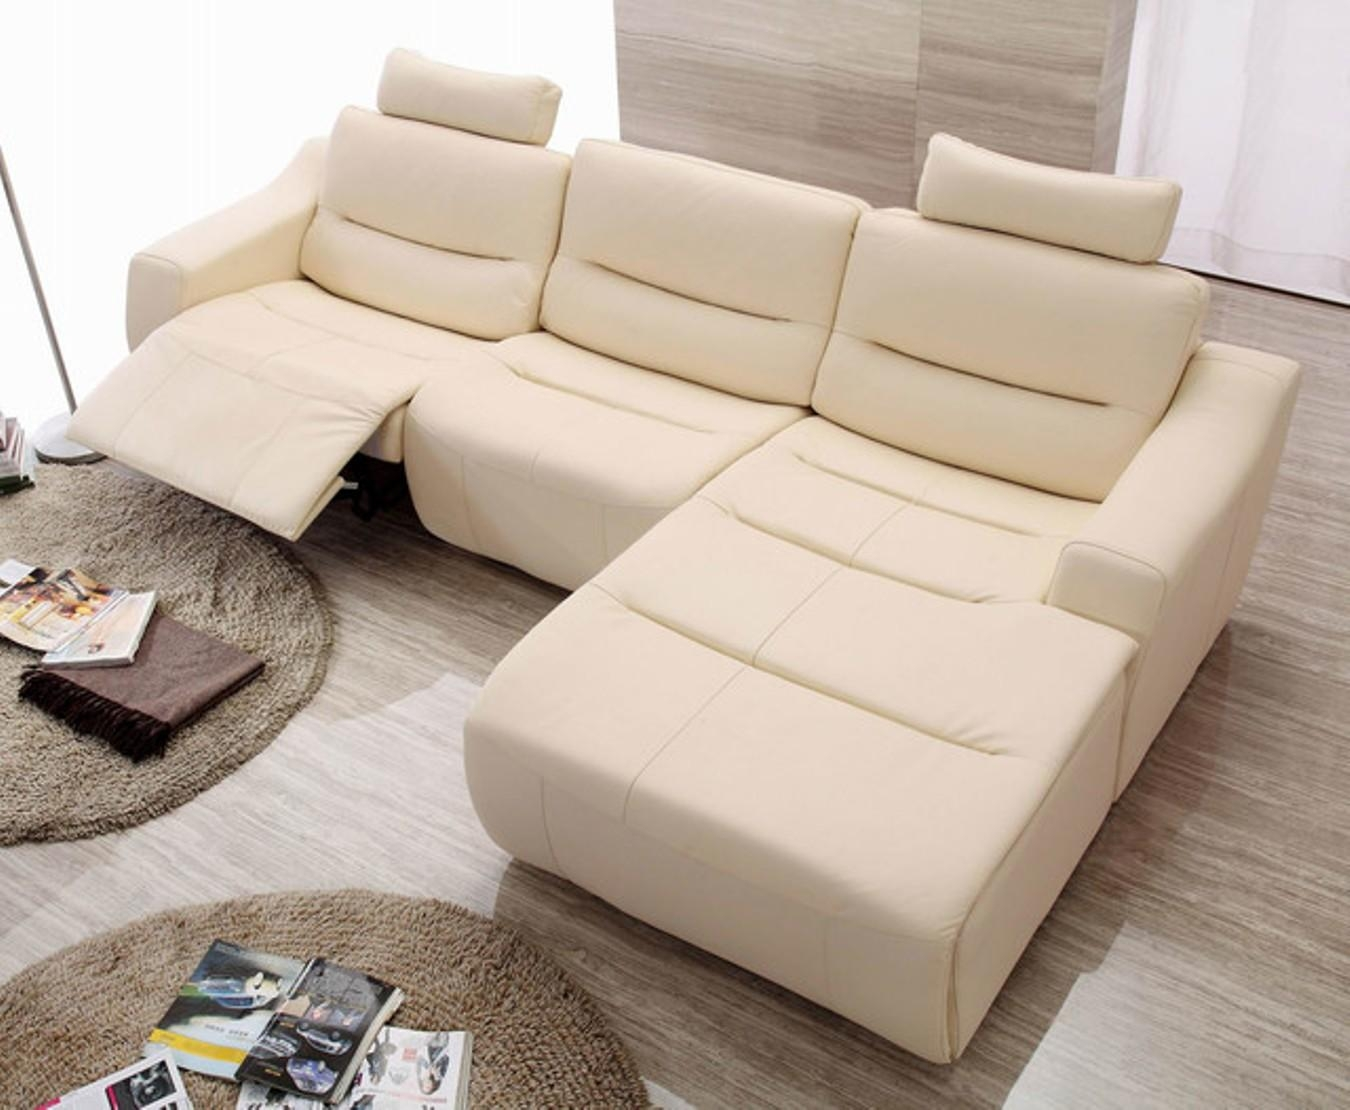 Sofas Center : Stunning Small Sectional Sofa With Recliner Images Intended For Small Scale Sofas (Image 18 of 20)